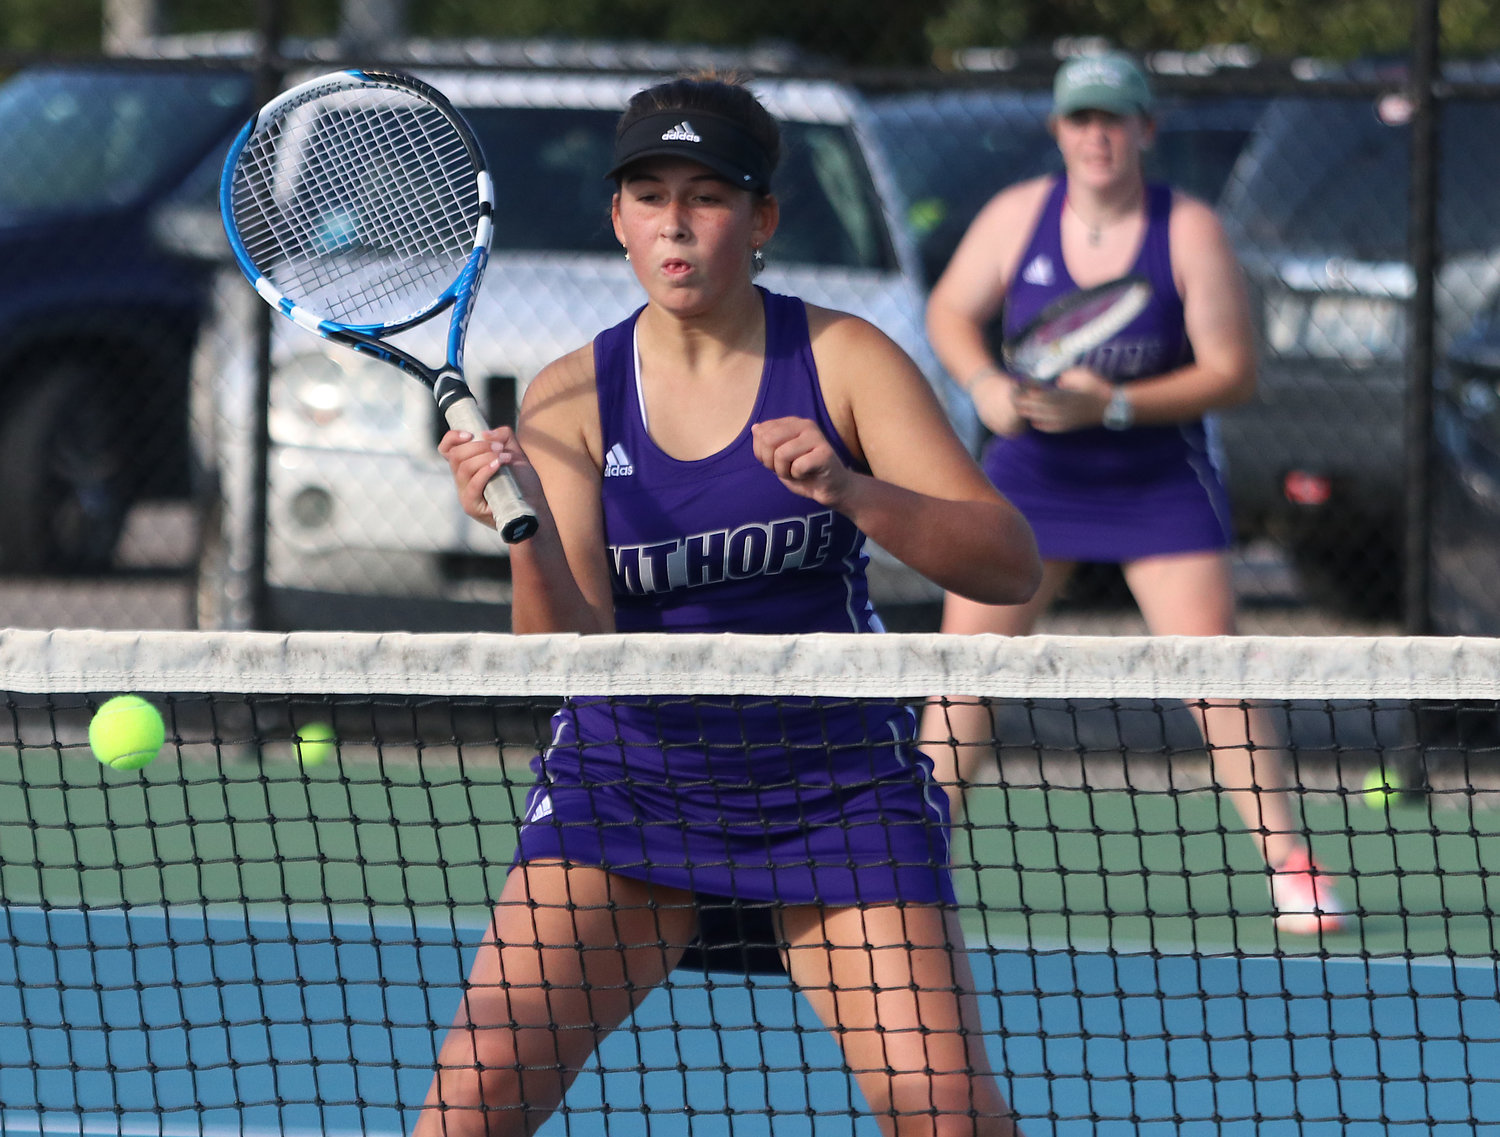 No. 1 doubles player Annie Kryzwicki drops a shot over the net for a winner with teammate Ellee Kopecky (back) looking on.